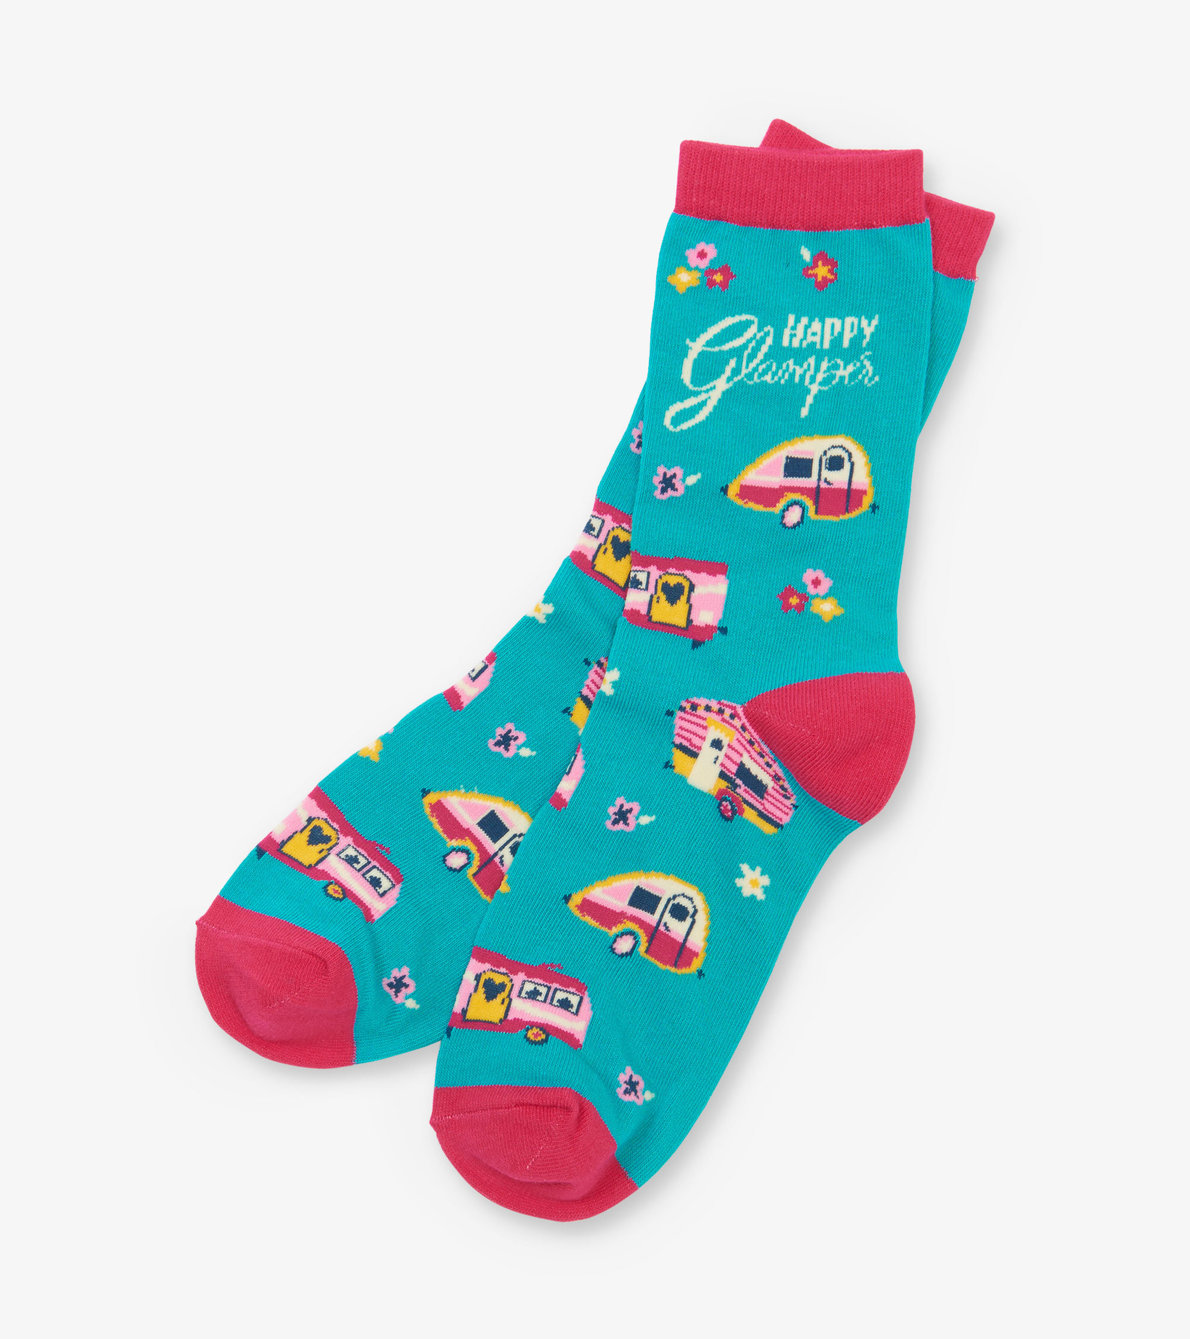 View larger image of Happy Glamper Women's Crew Socks